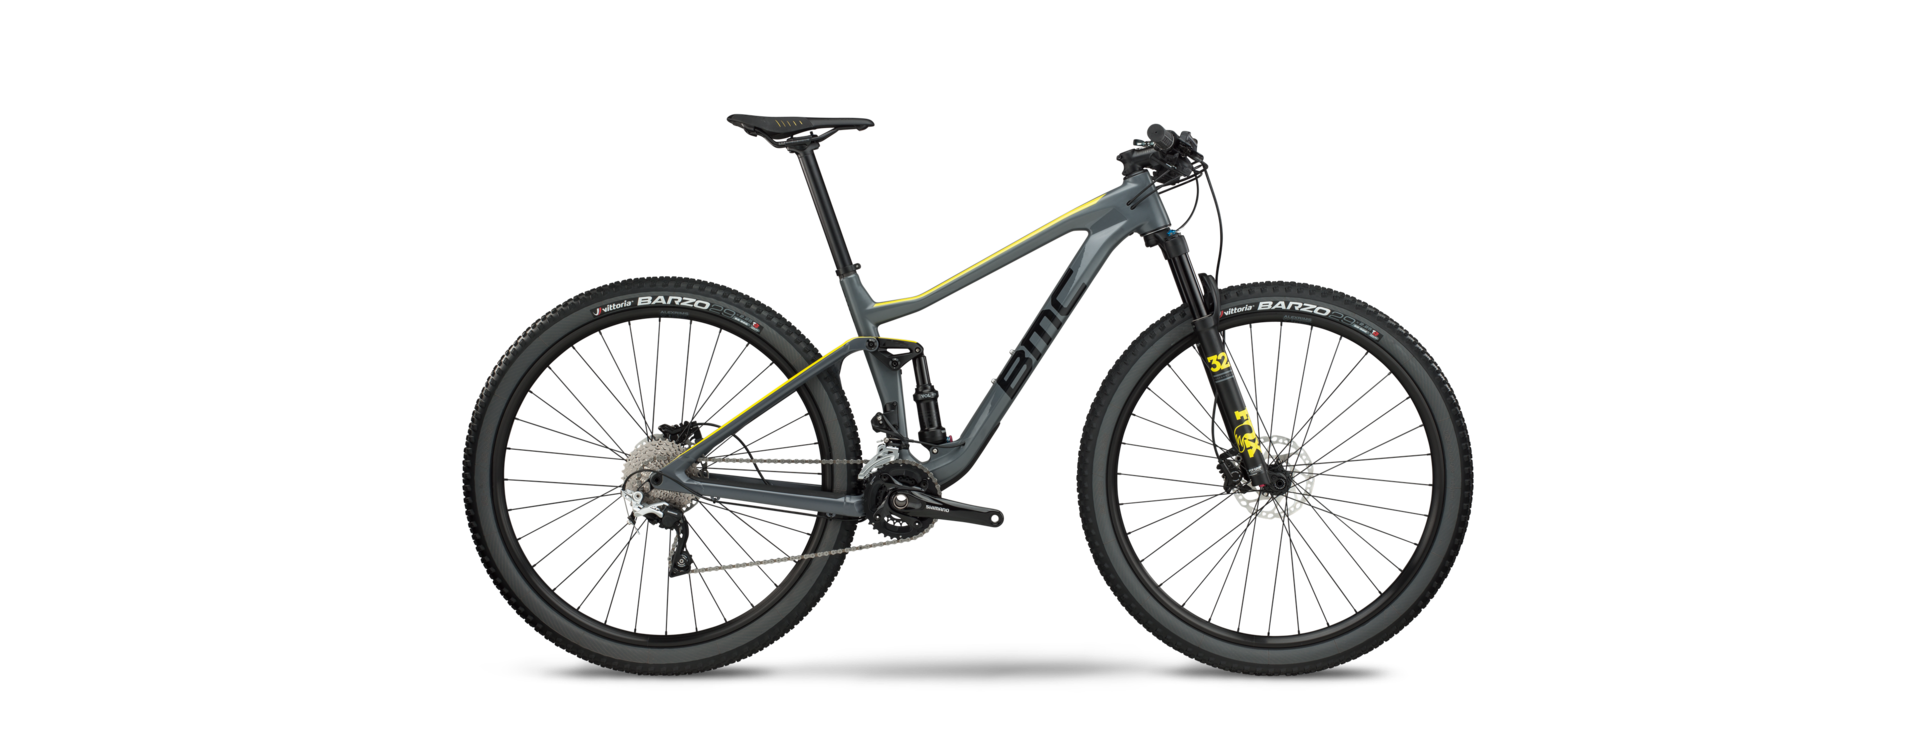 BMC Agonist 02 TWO 2018